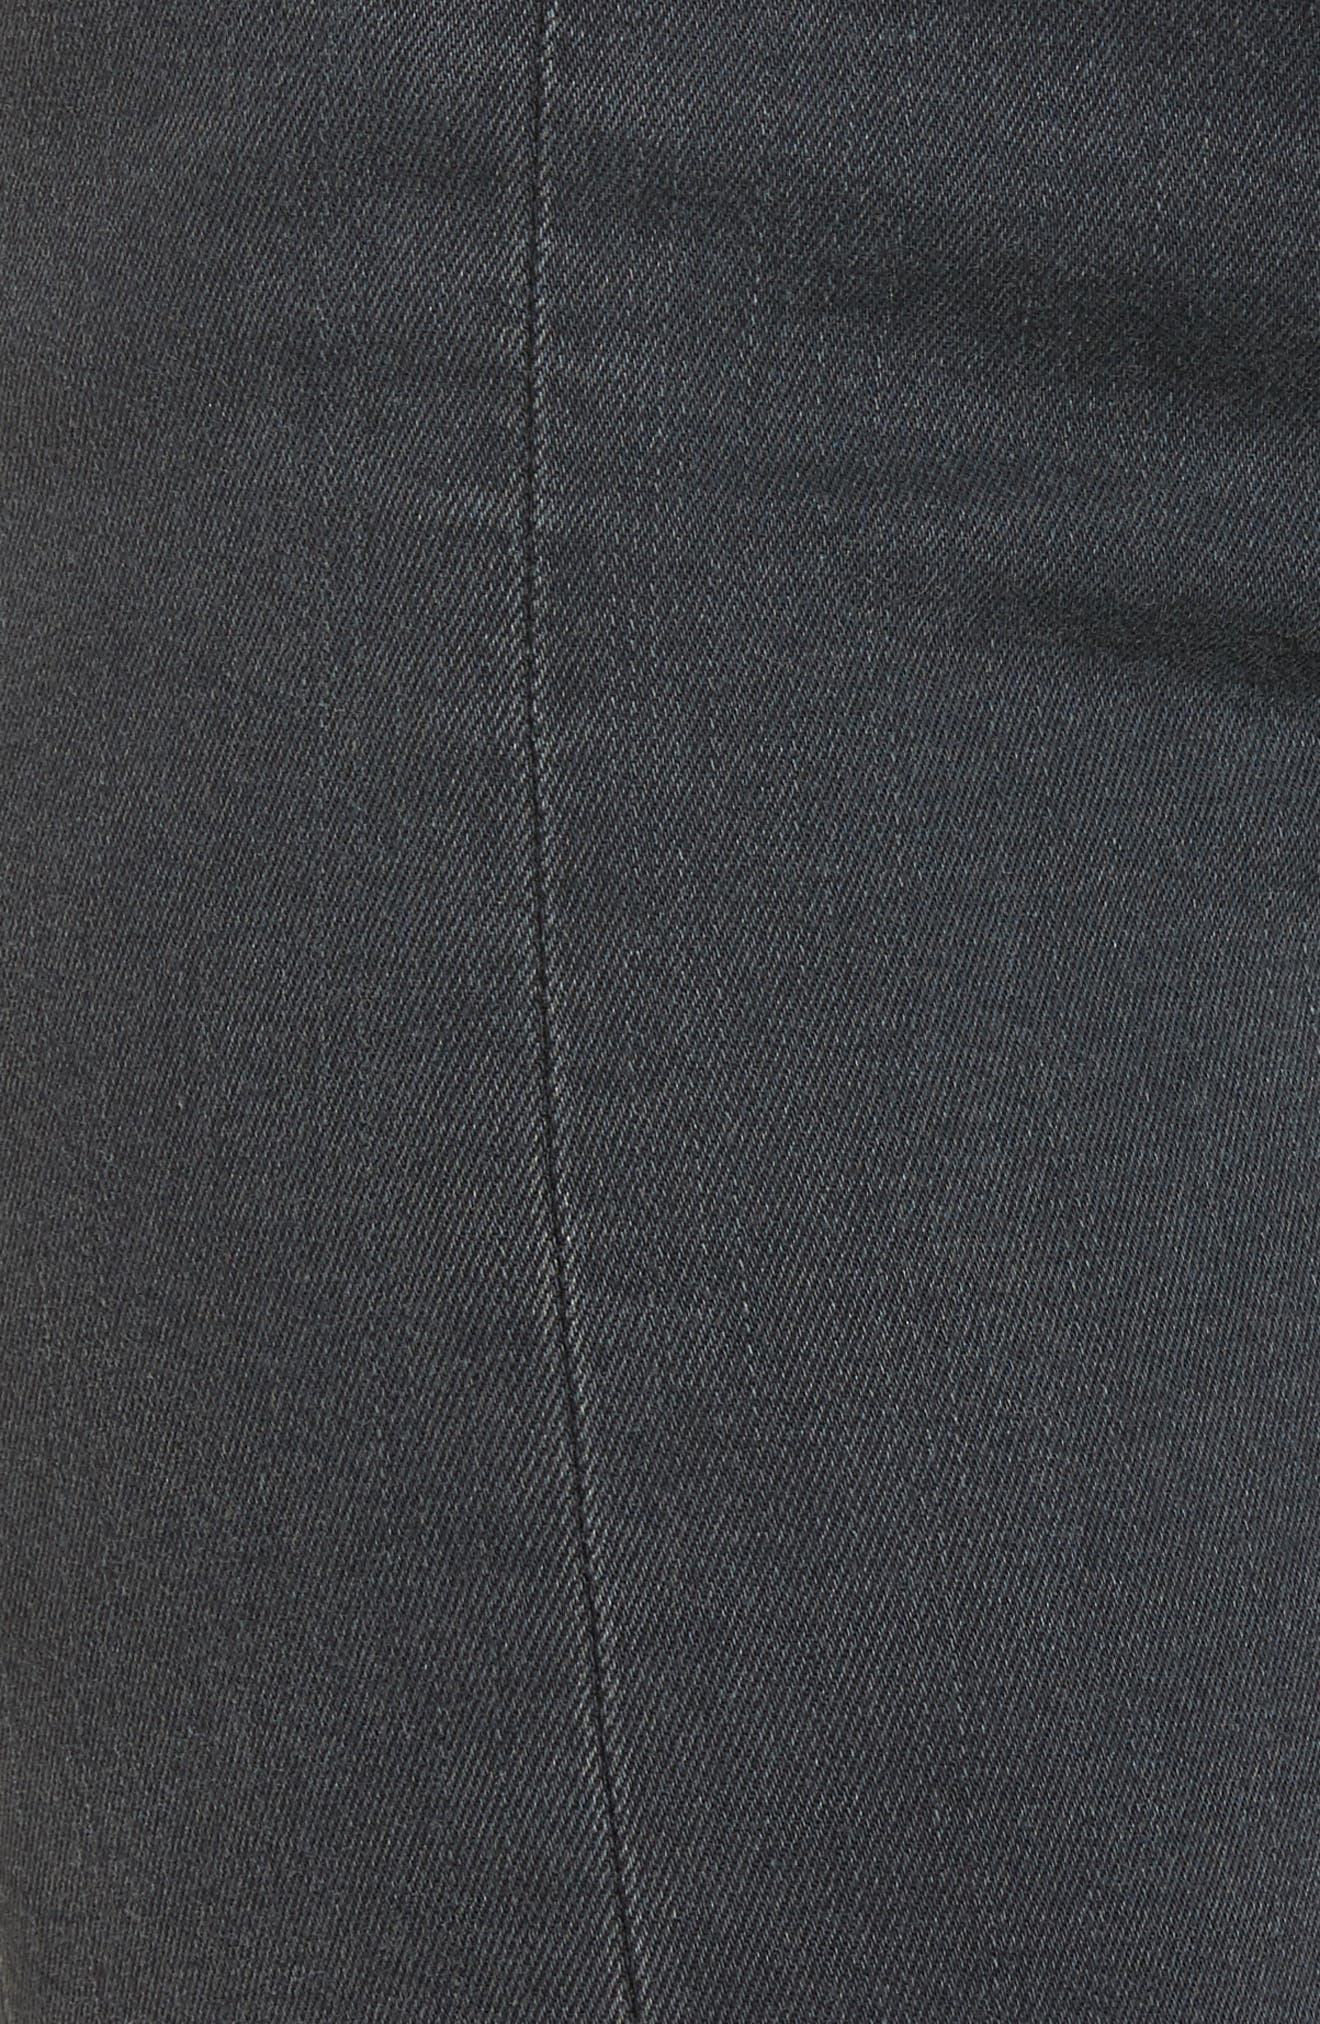 Jagger Front Seam Skinny Jeans,                             Alternate thumbnail 5, color,